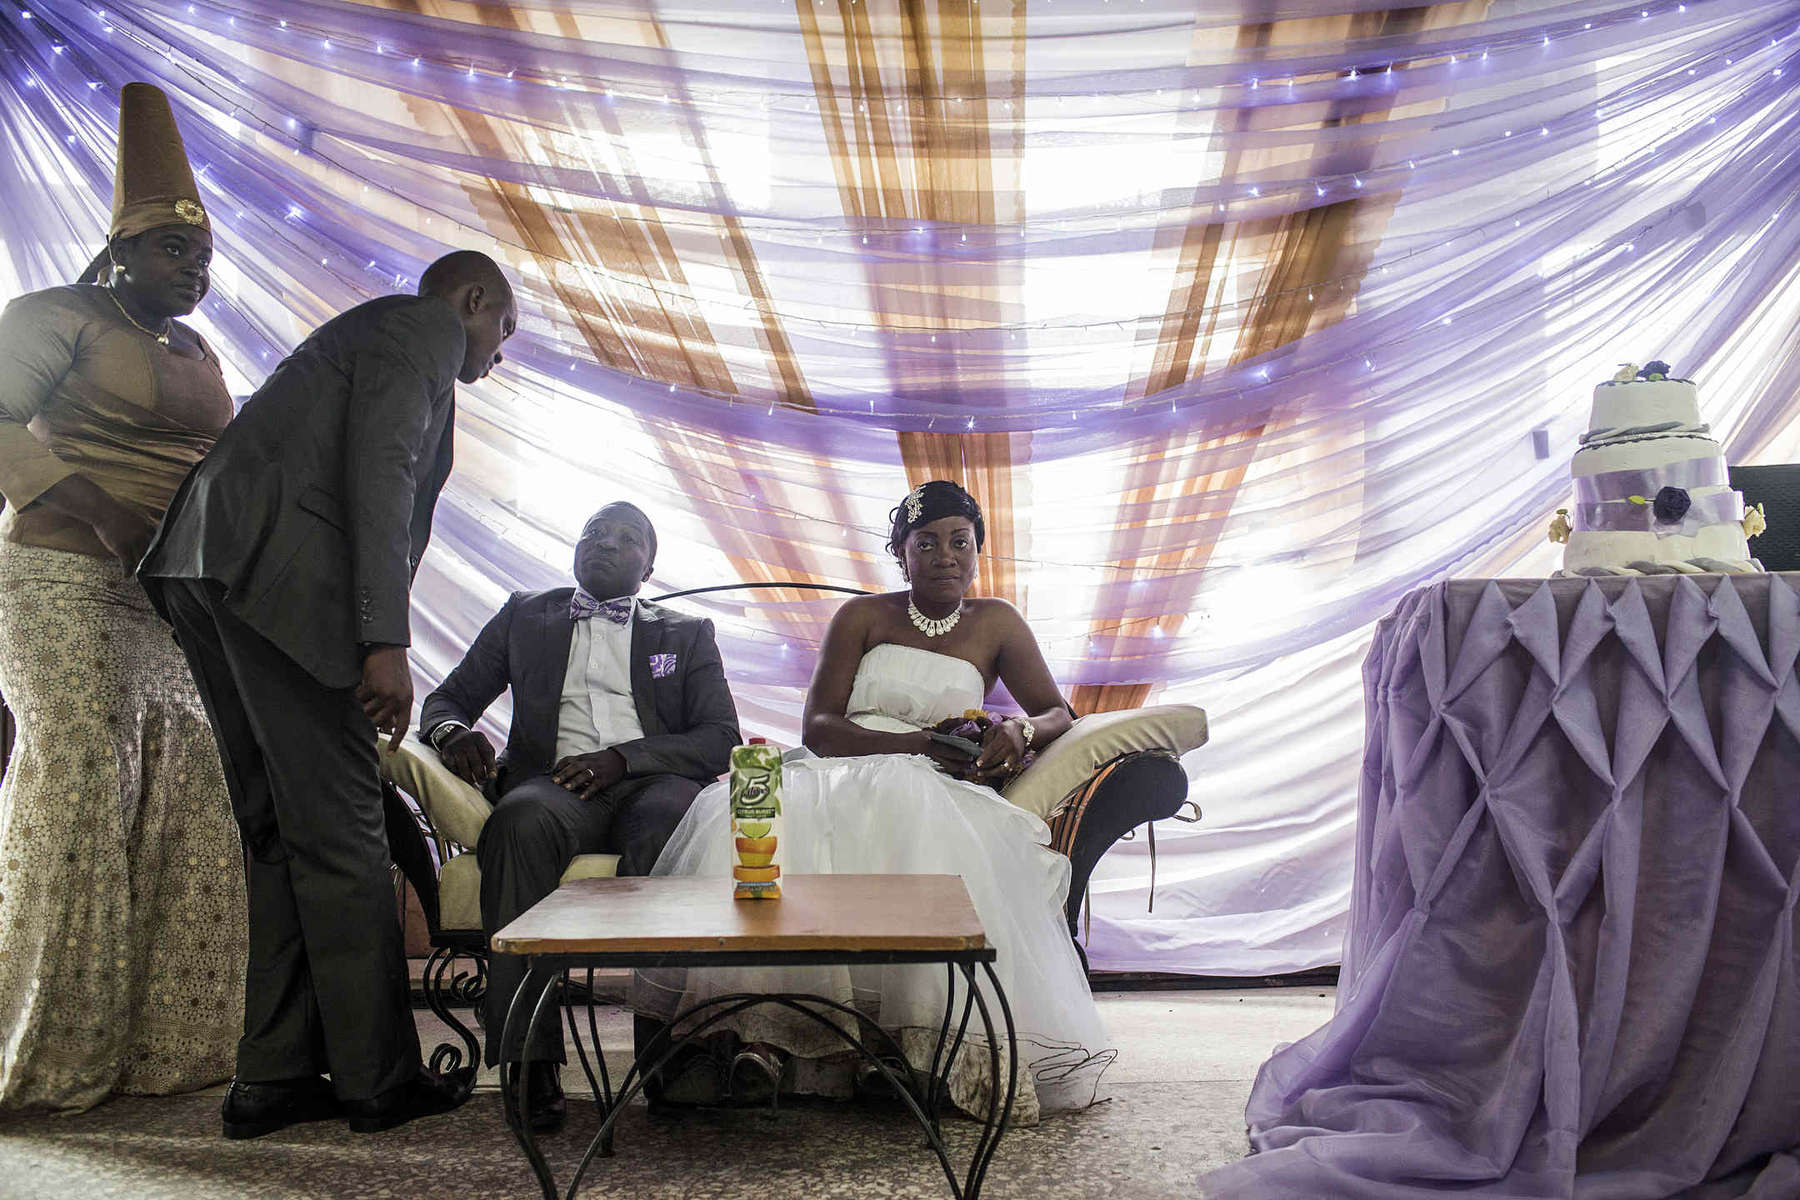 Groom Shadrach Uchenna, a wedding photographer, and his bride Ekpo Peace Emem sit at the front of a banquet hall during the wedding as guests greet them in Lagos, Nigeria.